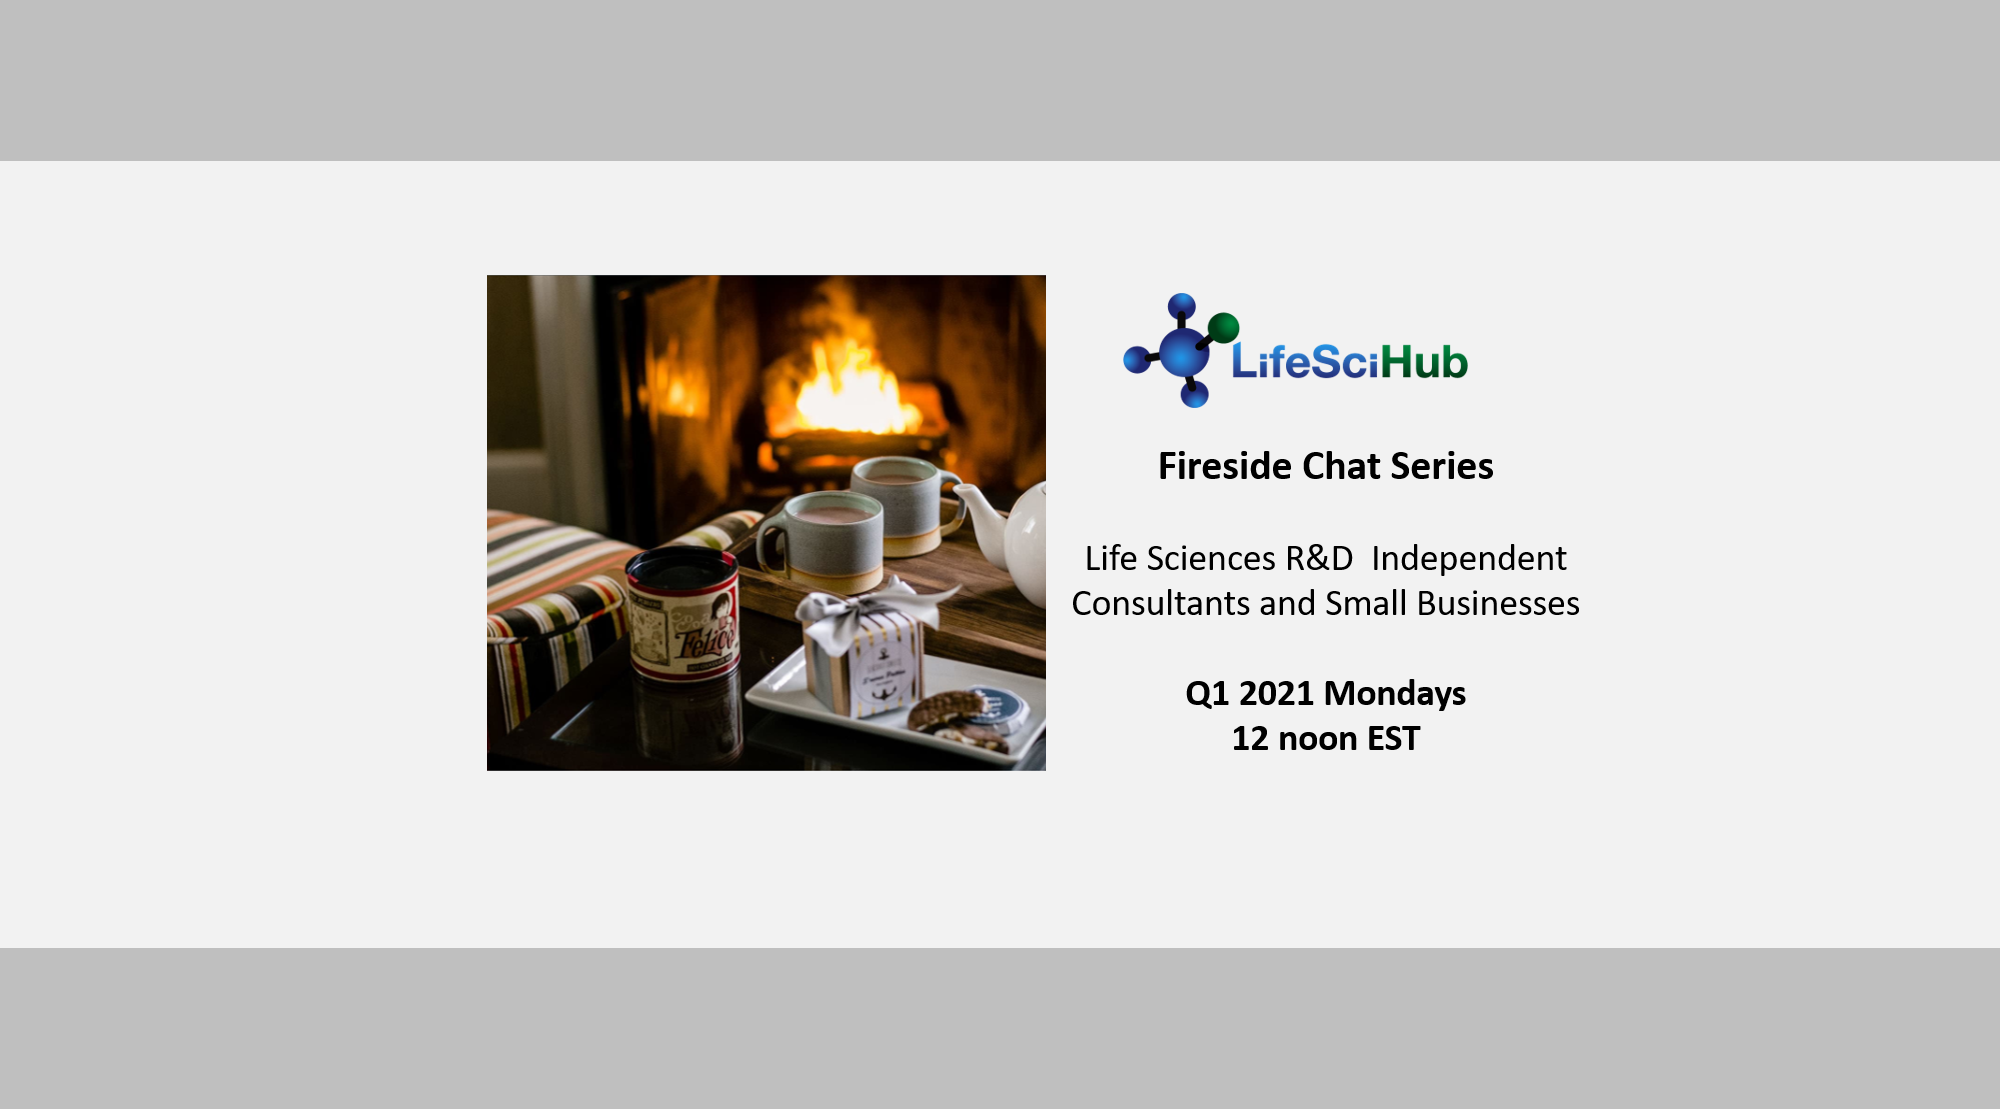 LifeSciHub Fireside Chats for Independent Consultants and Small Businesses